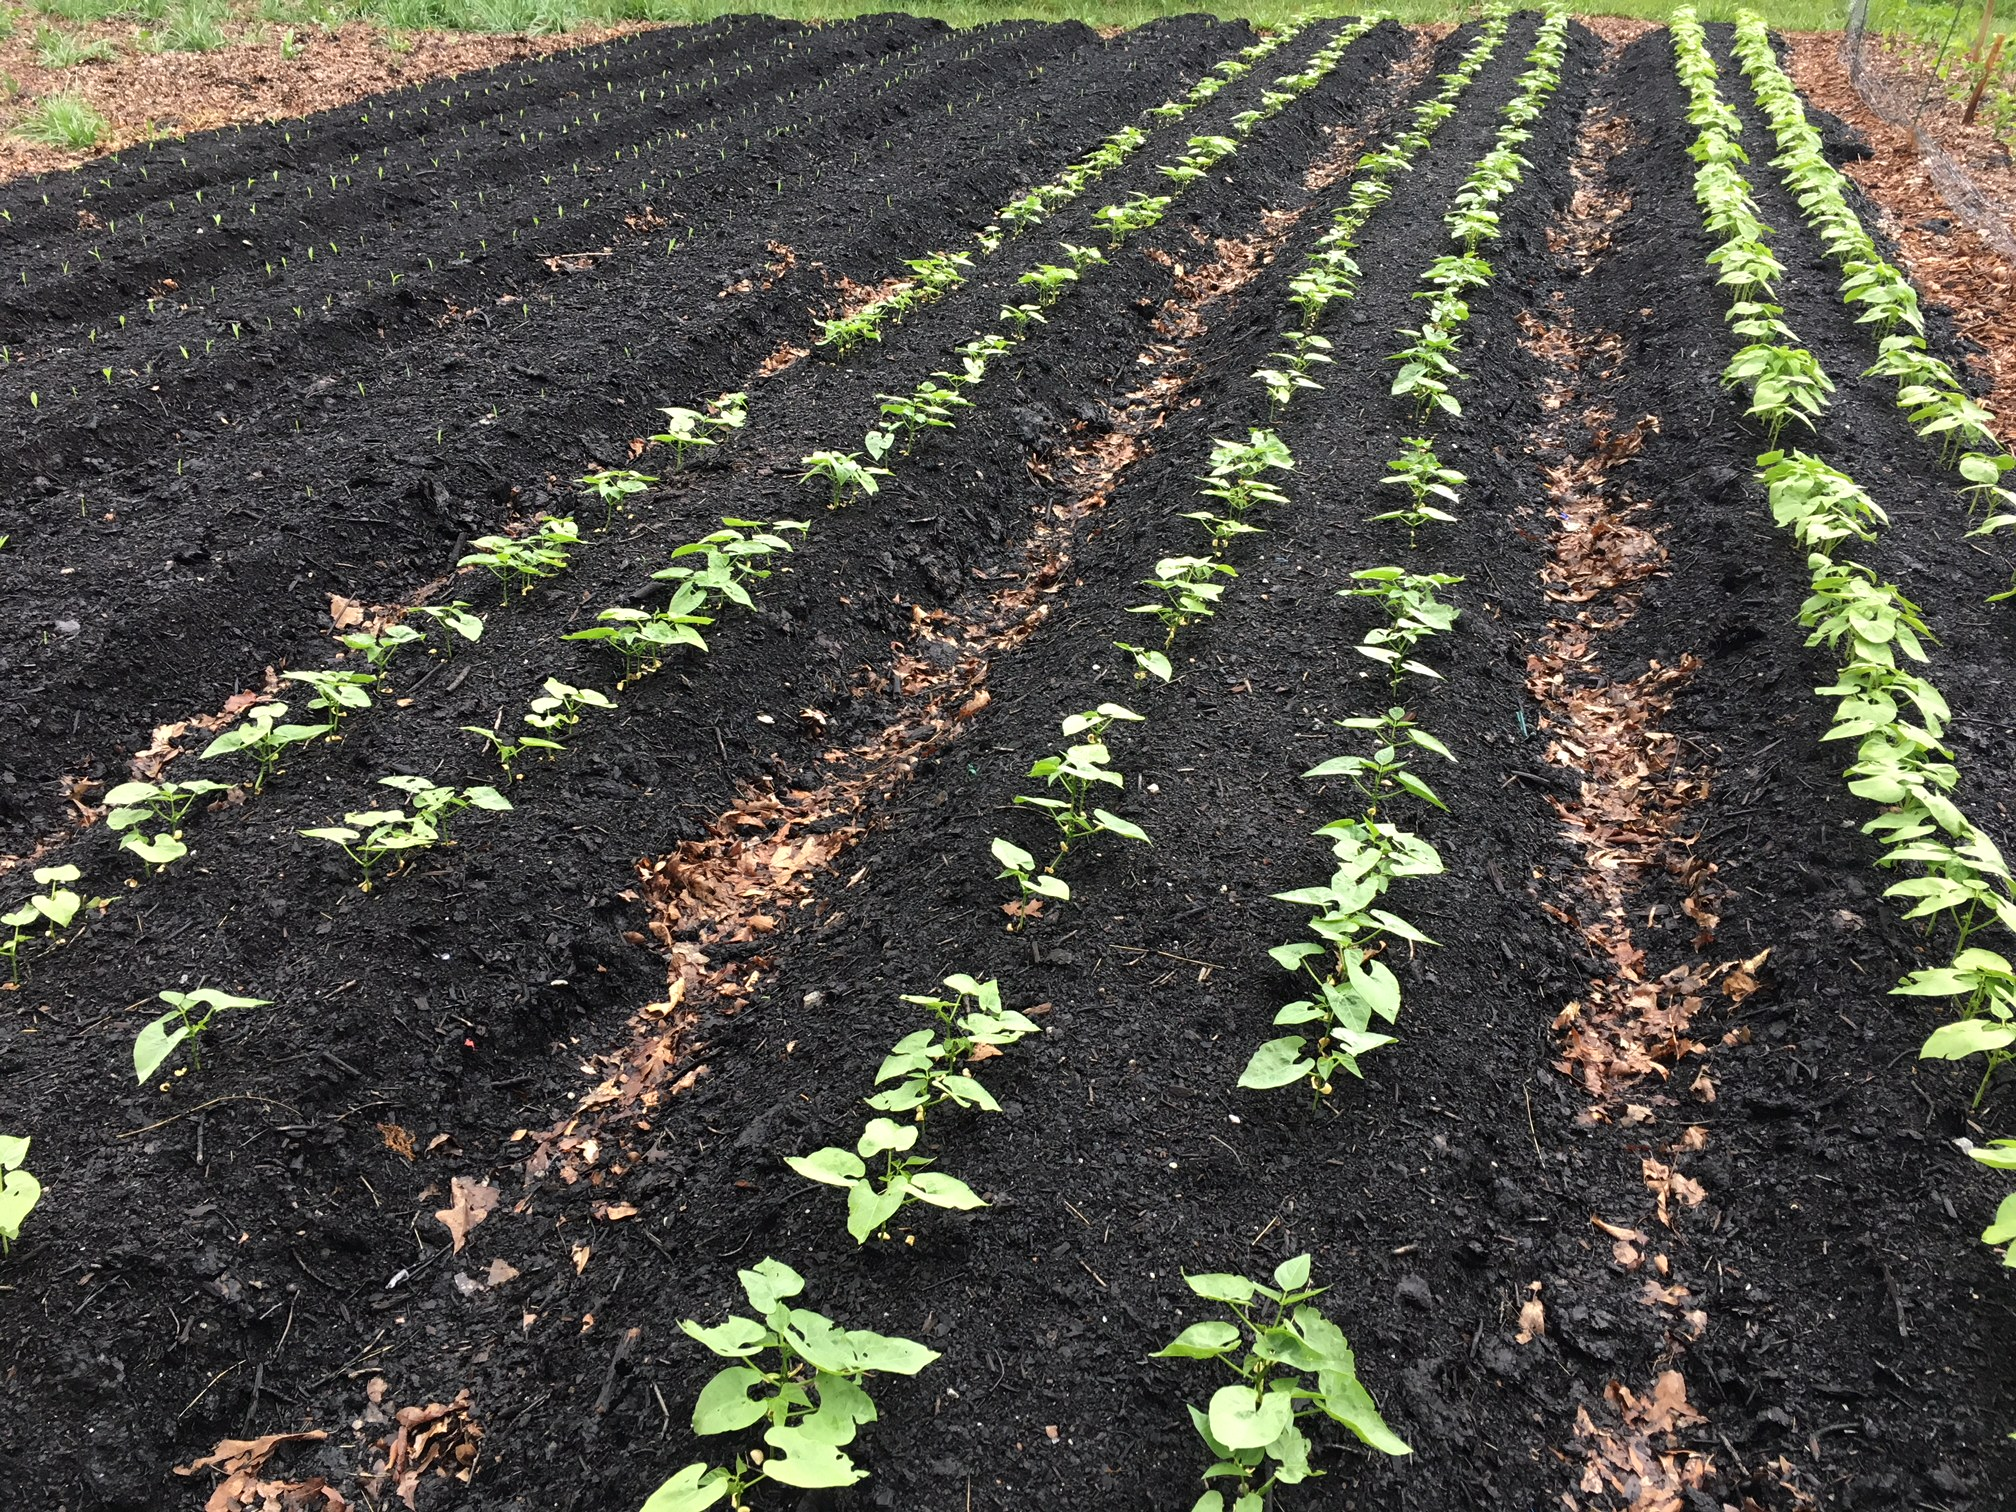 Newly installed rows and new seedlings (beans and corn) popping at Oak Hill Cafe in May. No-till organic gardening